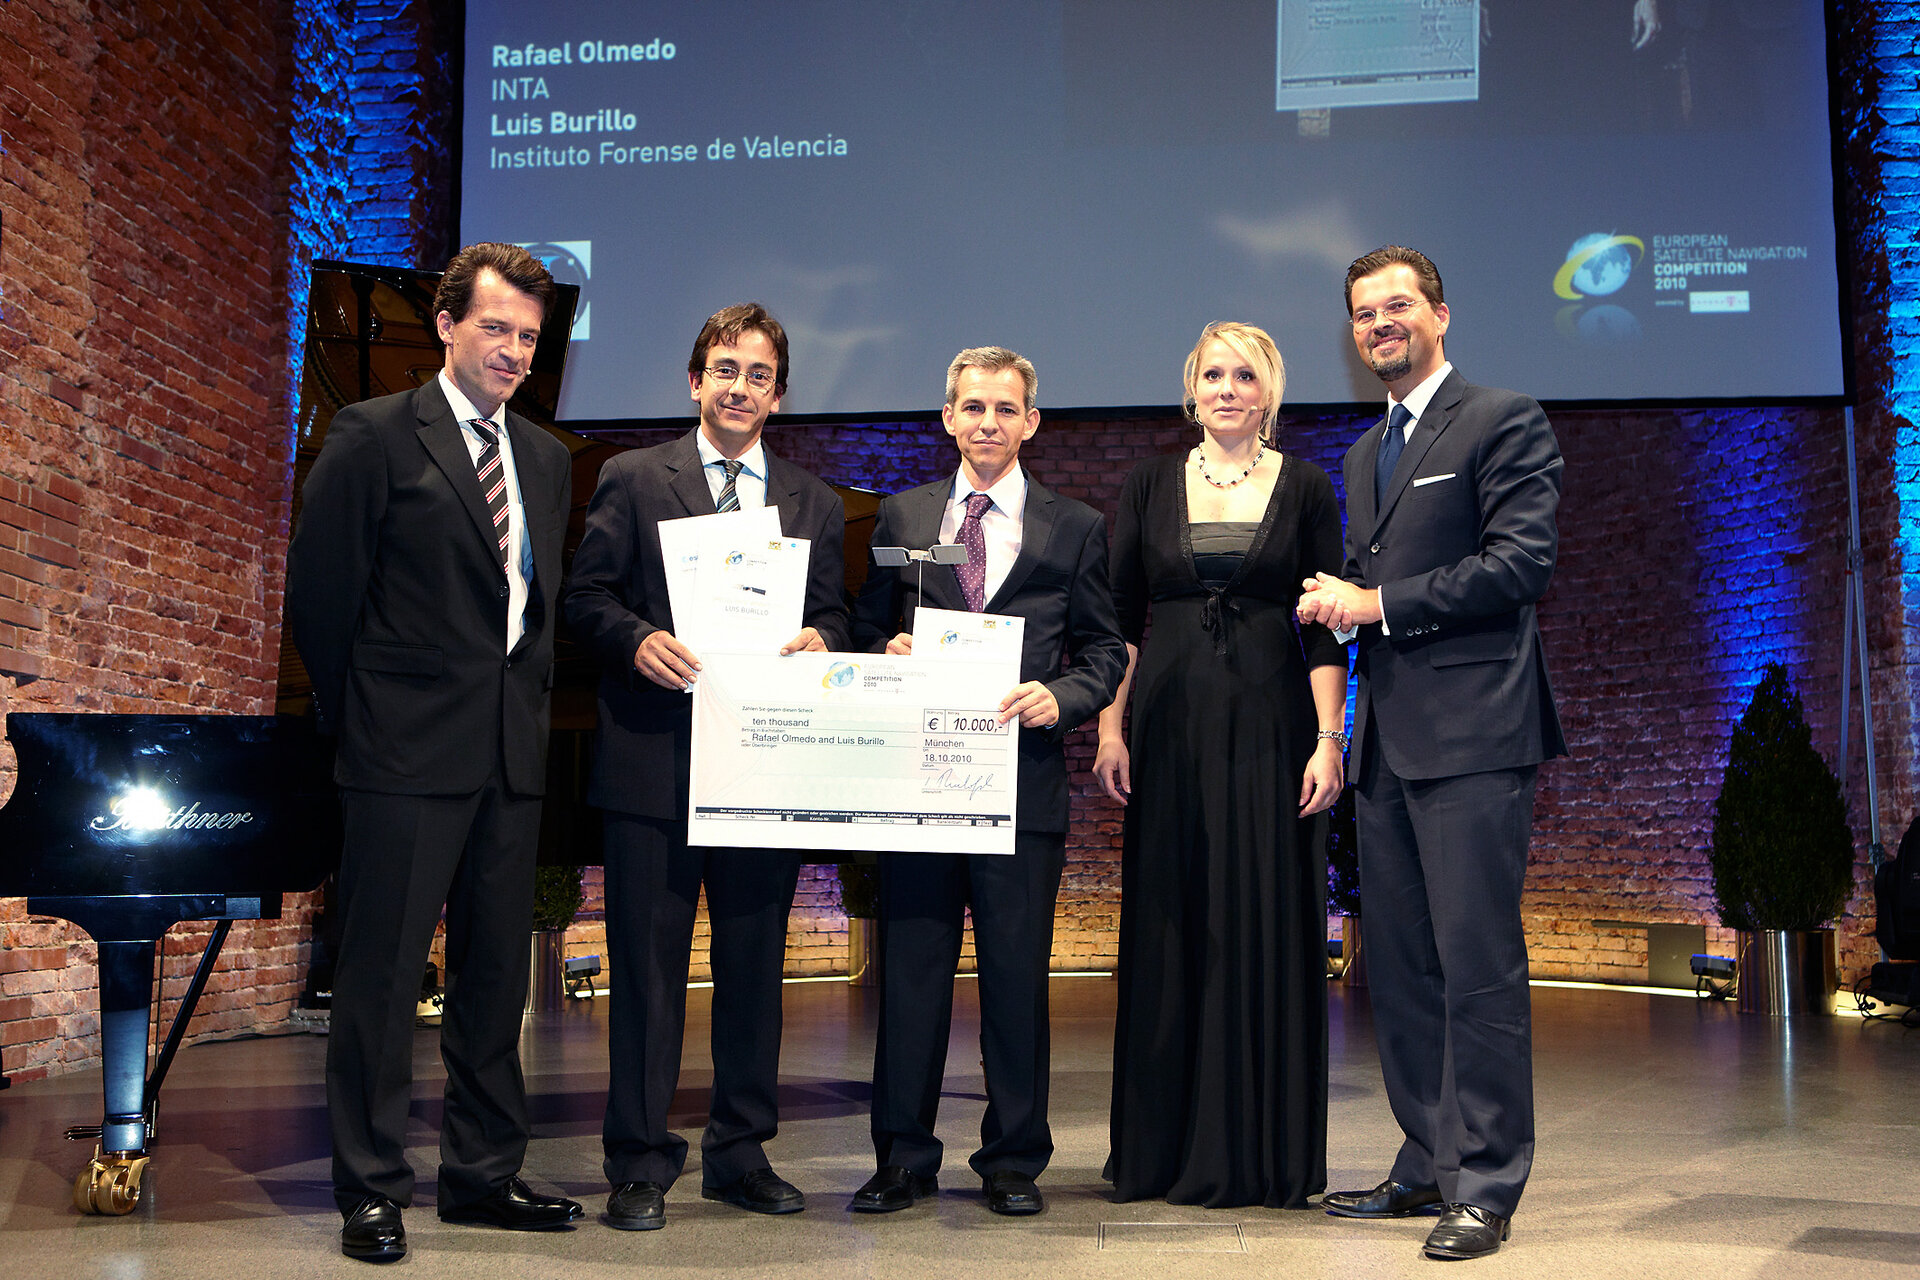 ESA Innovation Prize winners Olmedo and Burillo